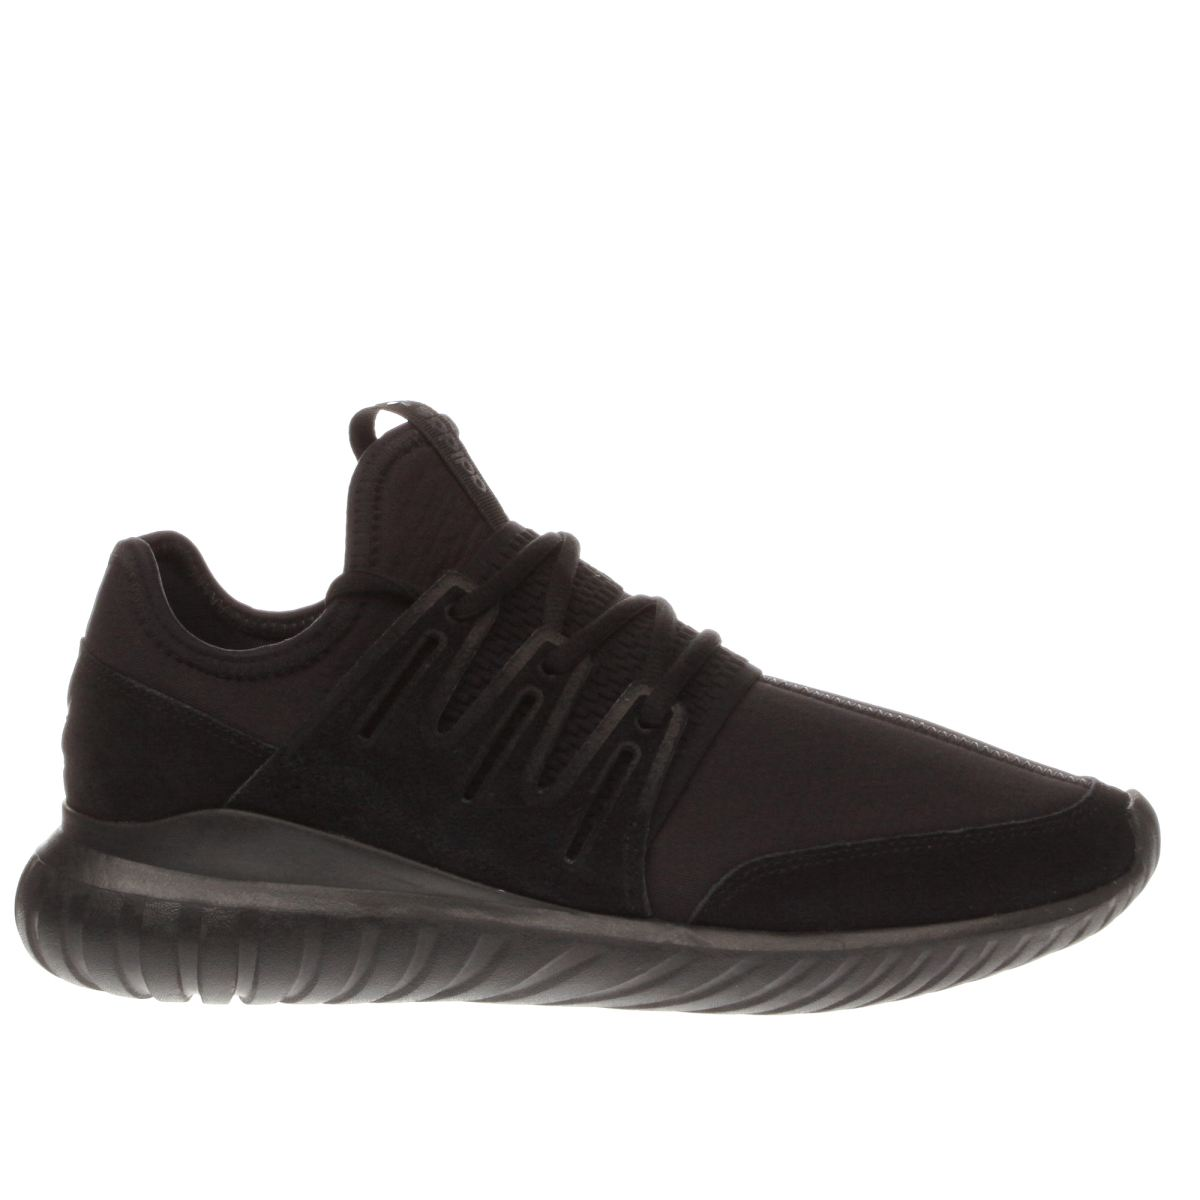 Adidas Tubular Radial Shoes Blue adidas MLT